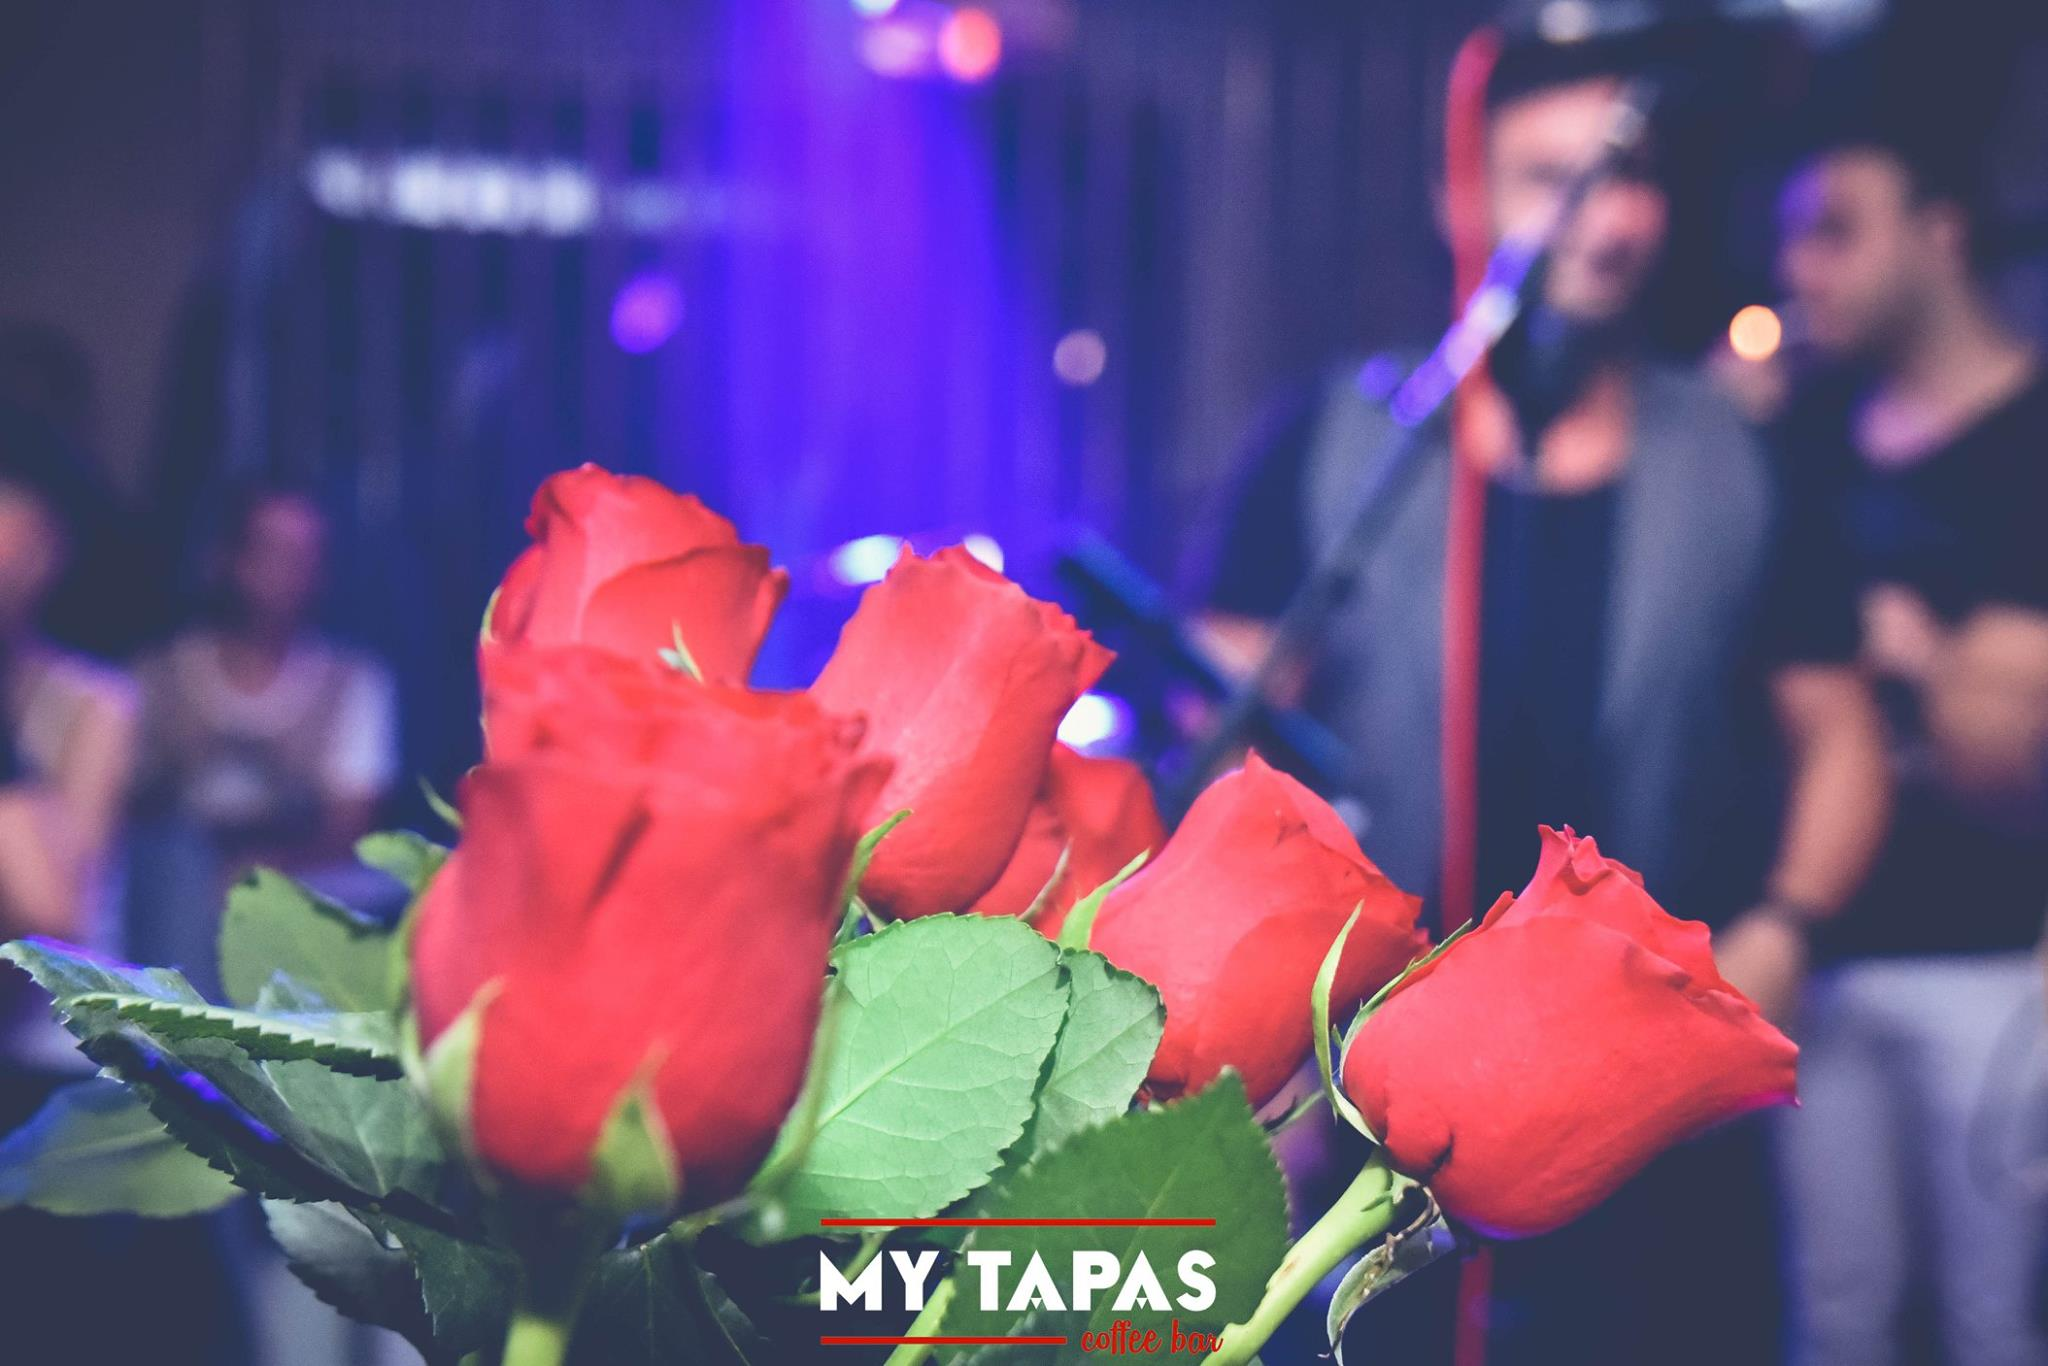 2. 22498891 1576369209049953 7303638918573231525 o - My Live Tuesdays στο MY Tapas Coffee bar | Τρίτη 17.10 Part 1/2